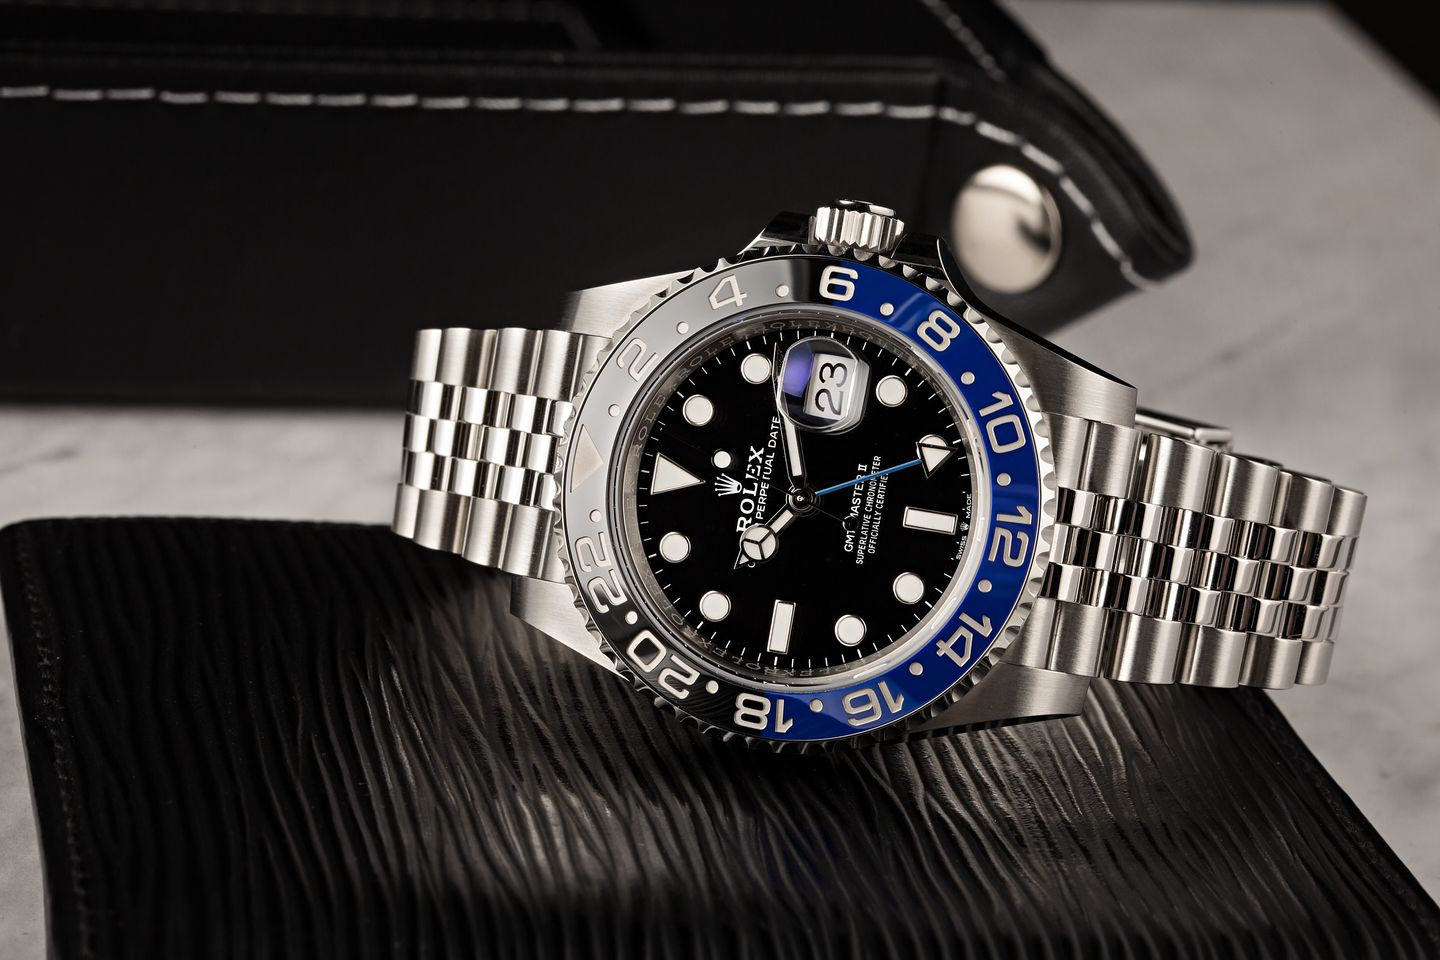 Rolex Batman vs Hulk Video Comparison GMT-Master II 126710 BLNR black and blue